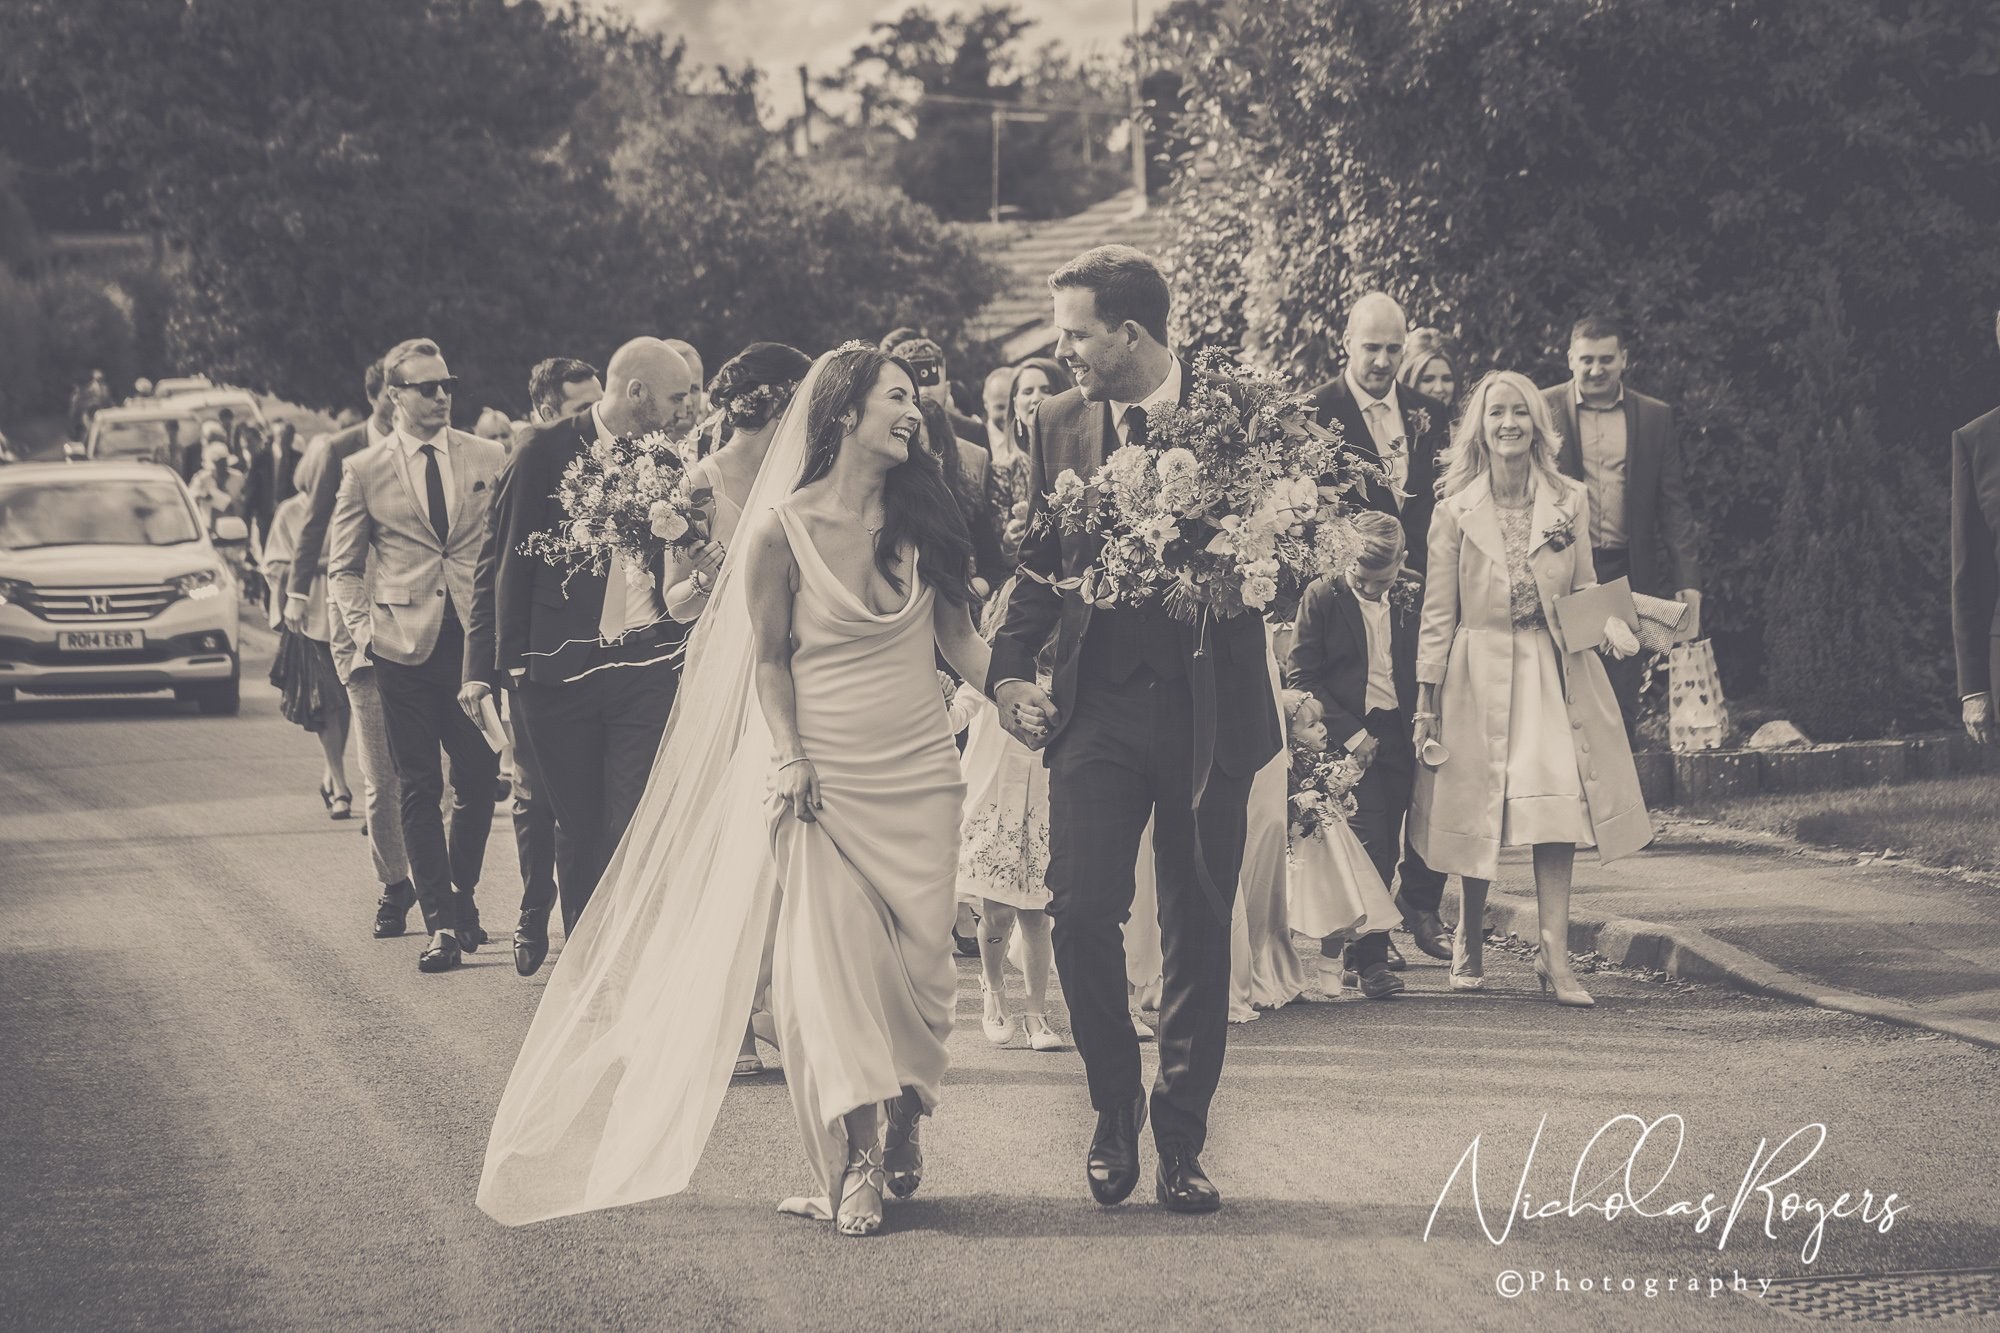 West Midlands Wedding Photography Nicholas Rogers Photography Rock Village Hall